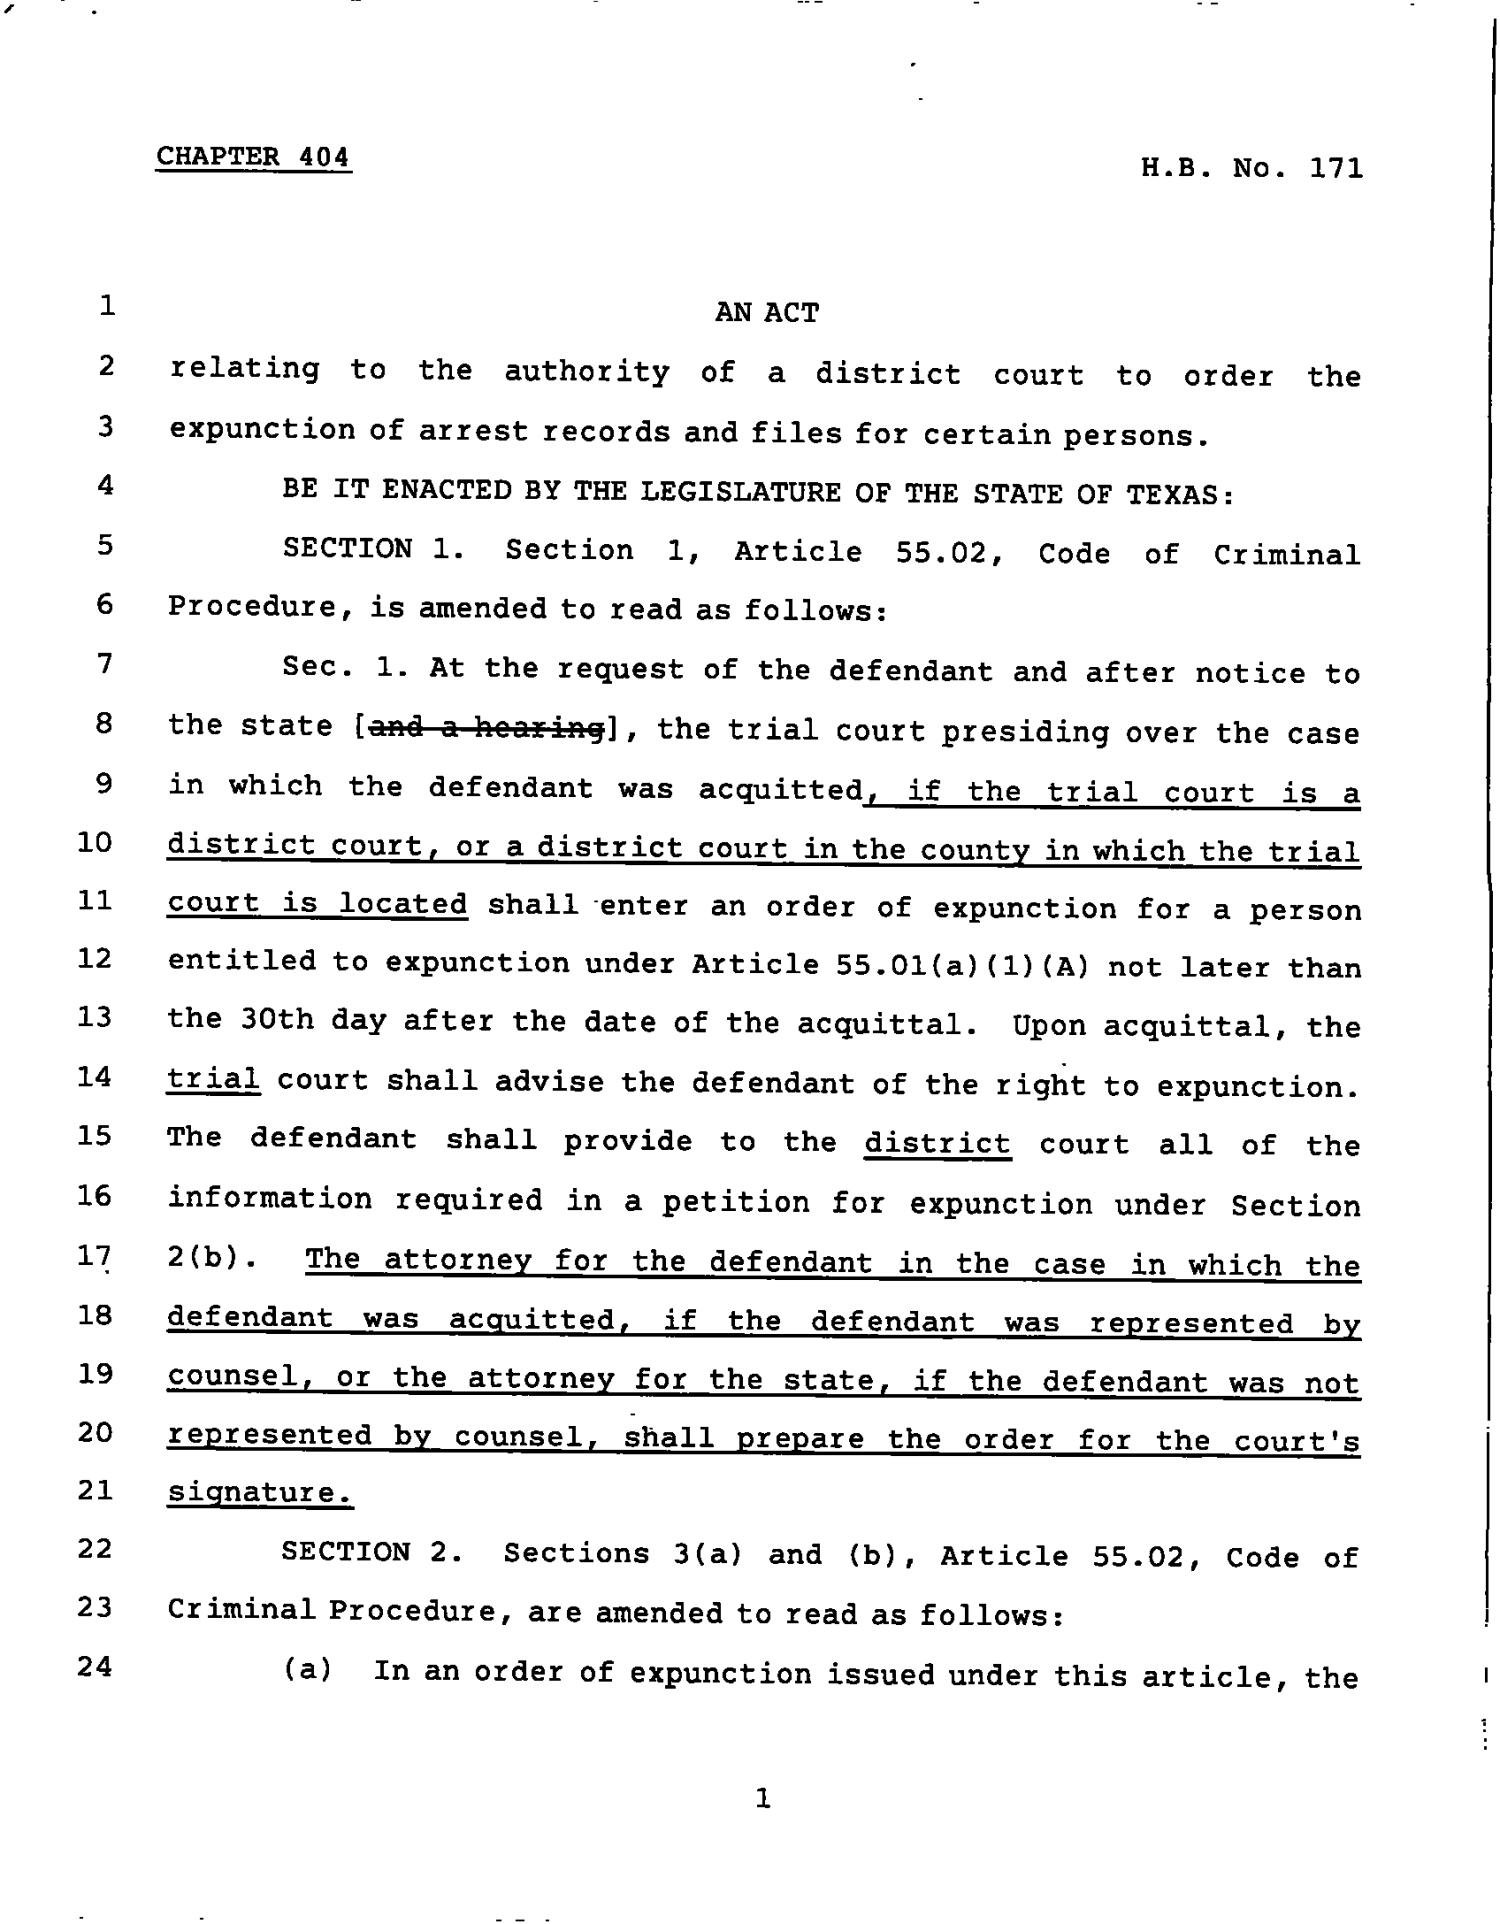 78th Texas Legislature, Regular Session, House Bill 171, Chapter 404                                                                                                      [Sequence #]: 1 of 3